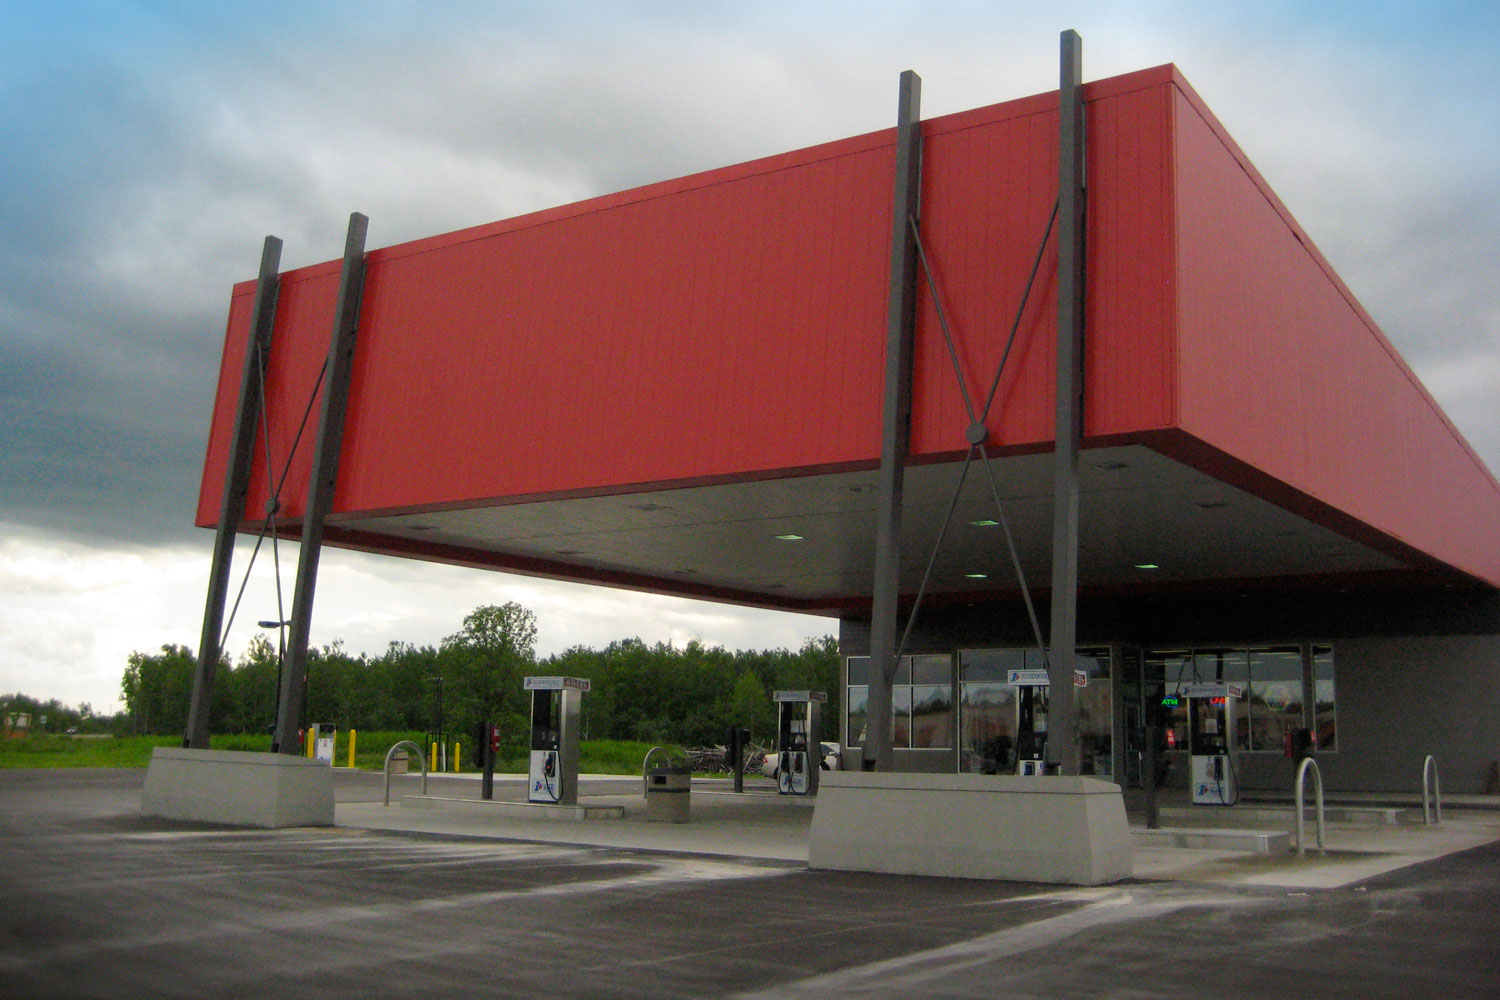 wavers-gas-station-commercial-retail-cohlmeyer-architecture.JPG